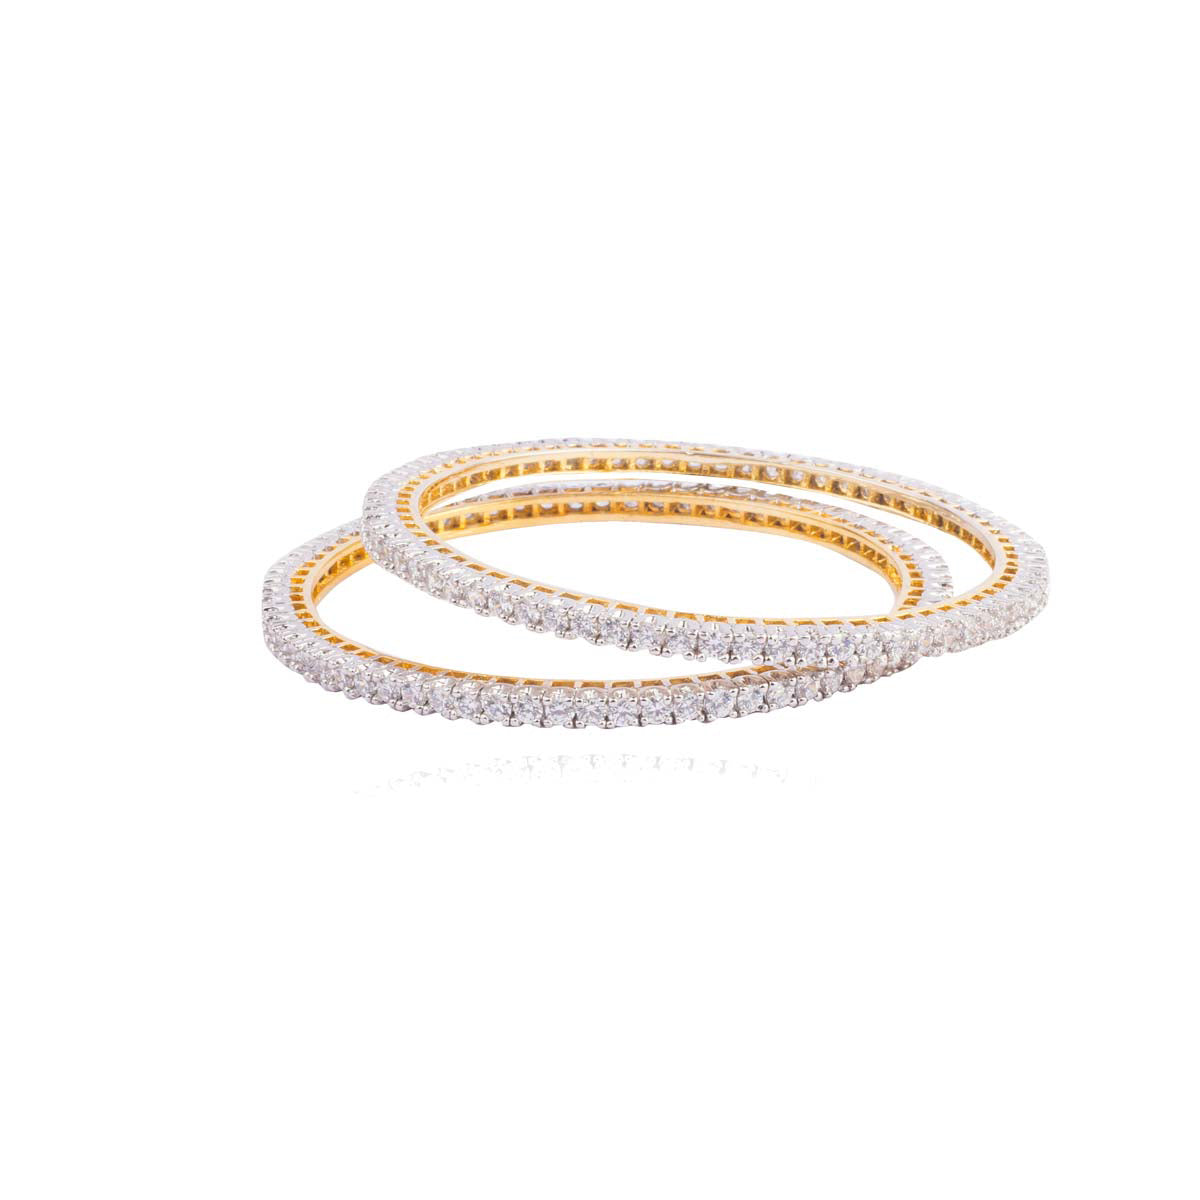 Simple, subtle, yet striking and oh-so-stylish, our single-lined solitaire bangles are studded with dreams.